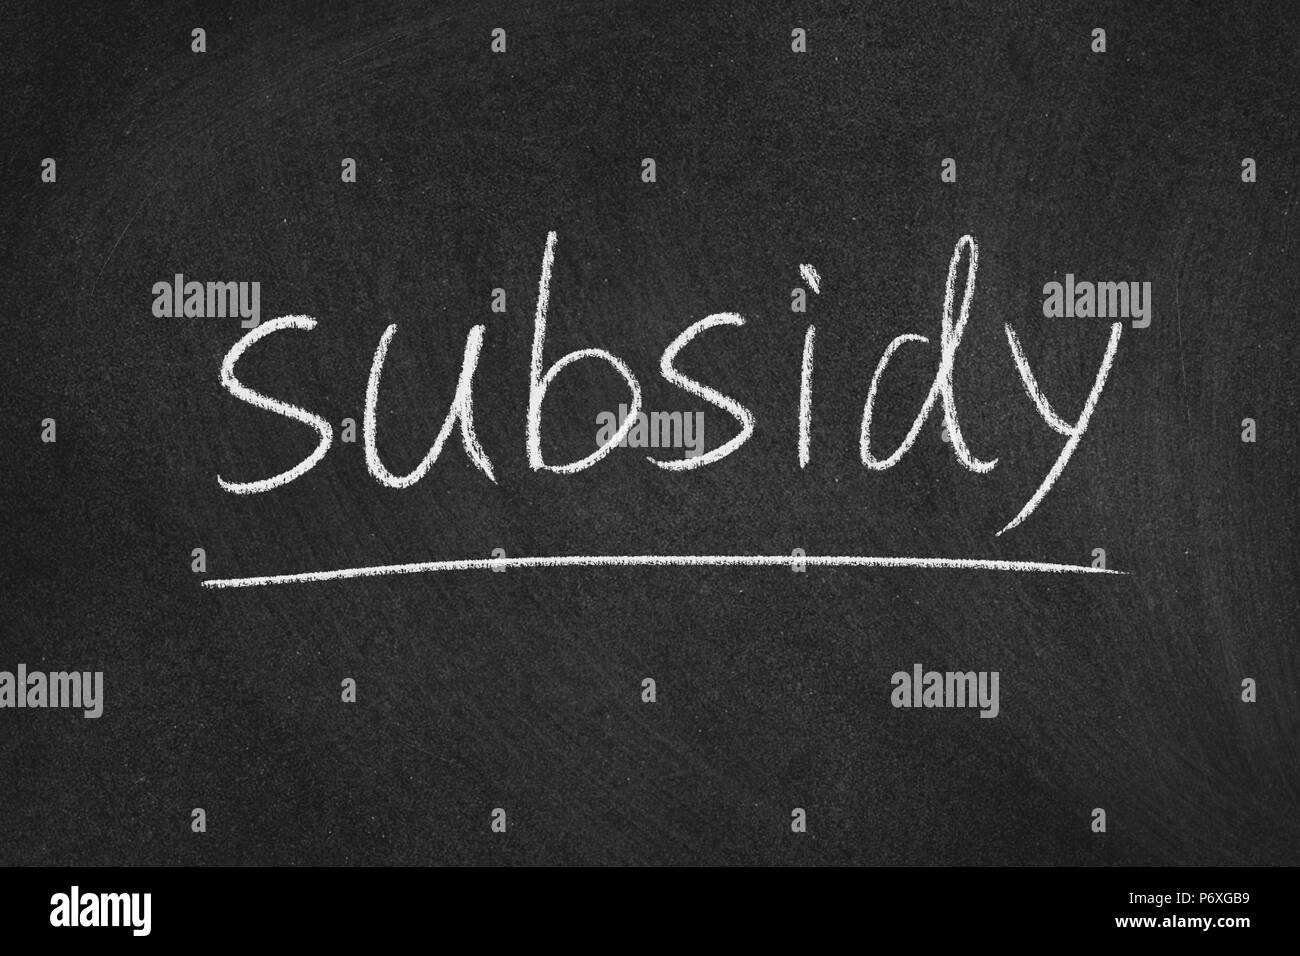 subsidy concept word on a blackboard background - Stock Image